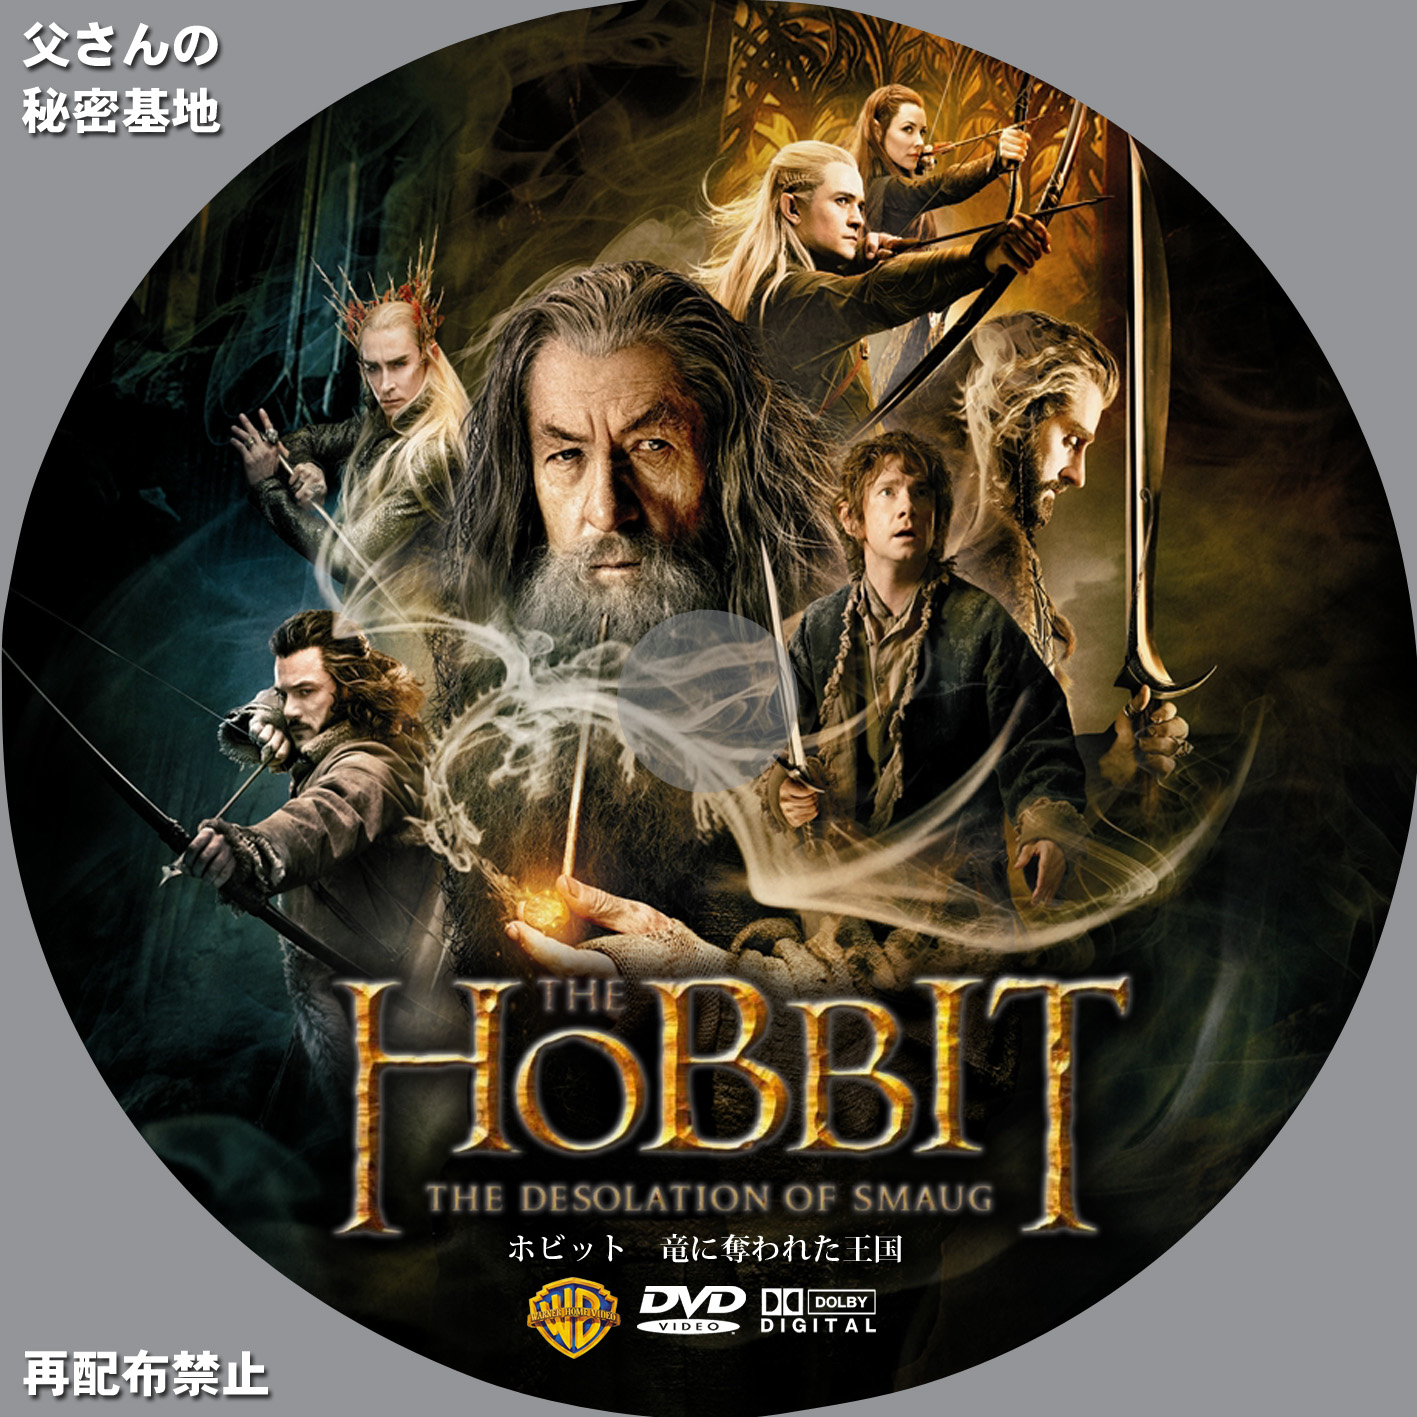 The Hobbit The Desolation of Smaug_DVD